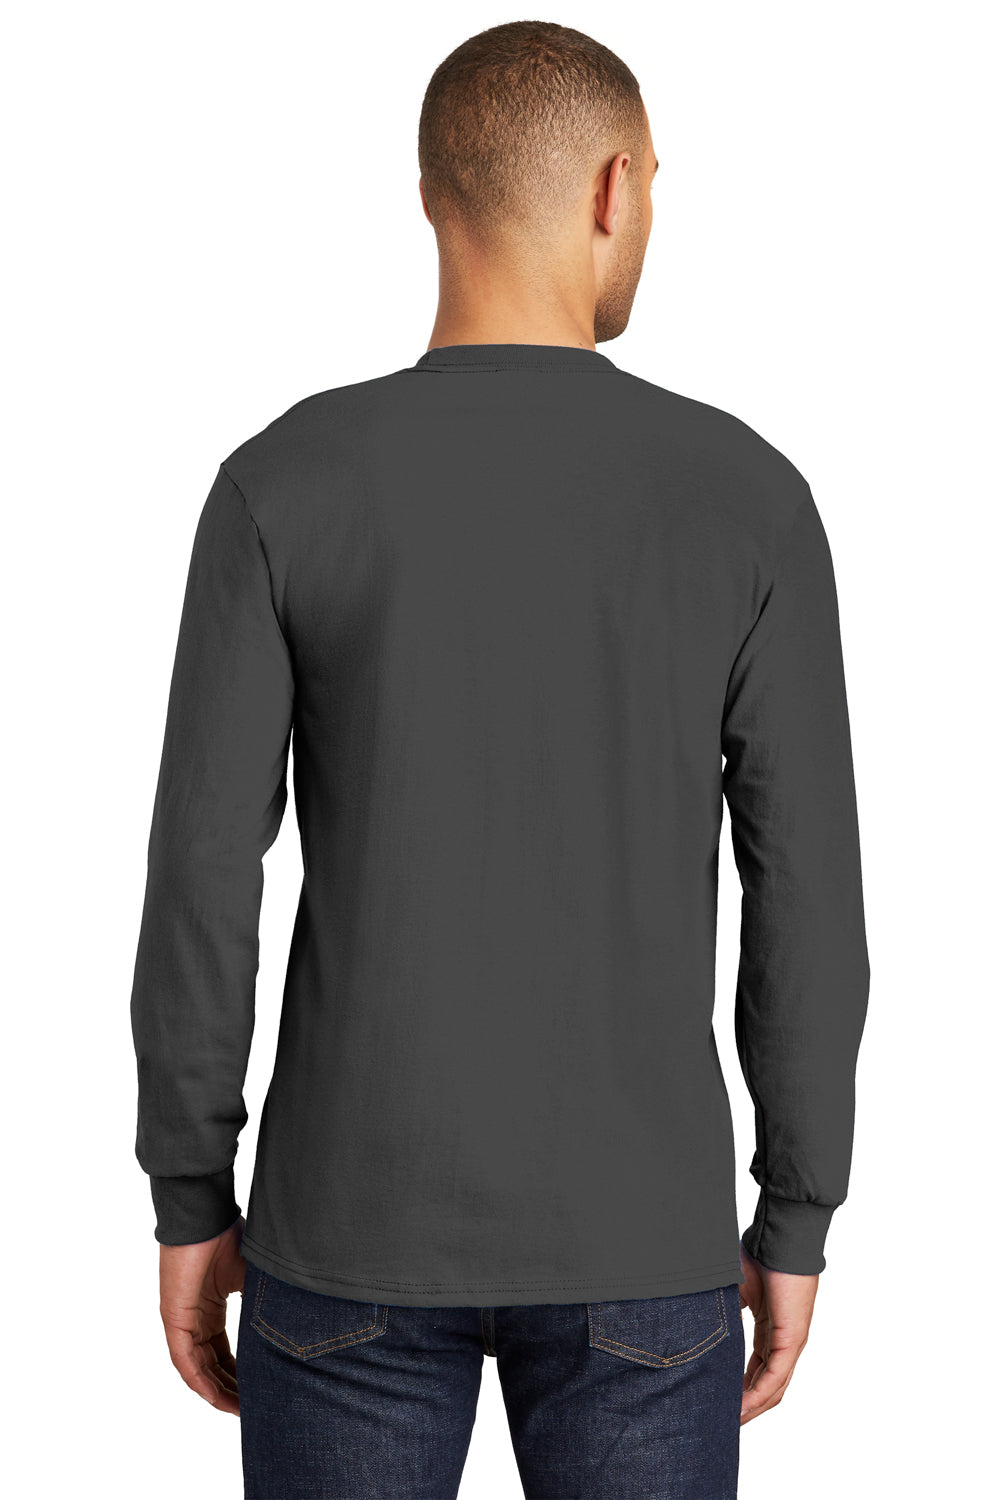 Port & Company PC61LSP Mens Essential Long Sleeve Crewneck T-Shirt w/ Pocket Charcoal Grey Back